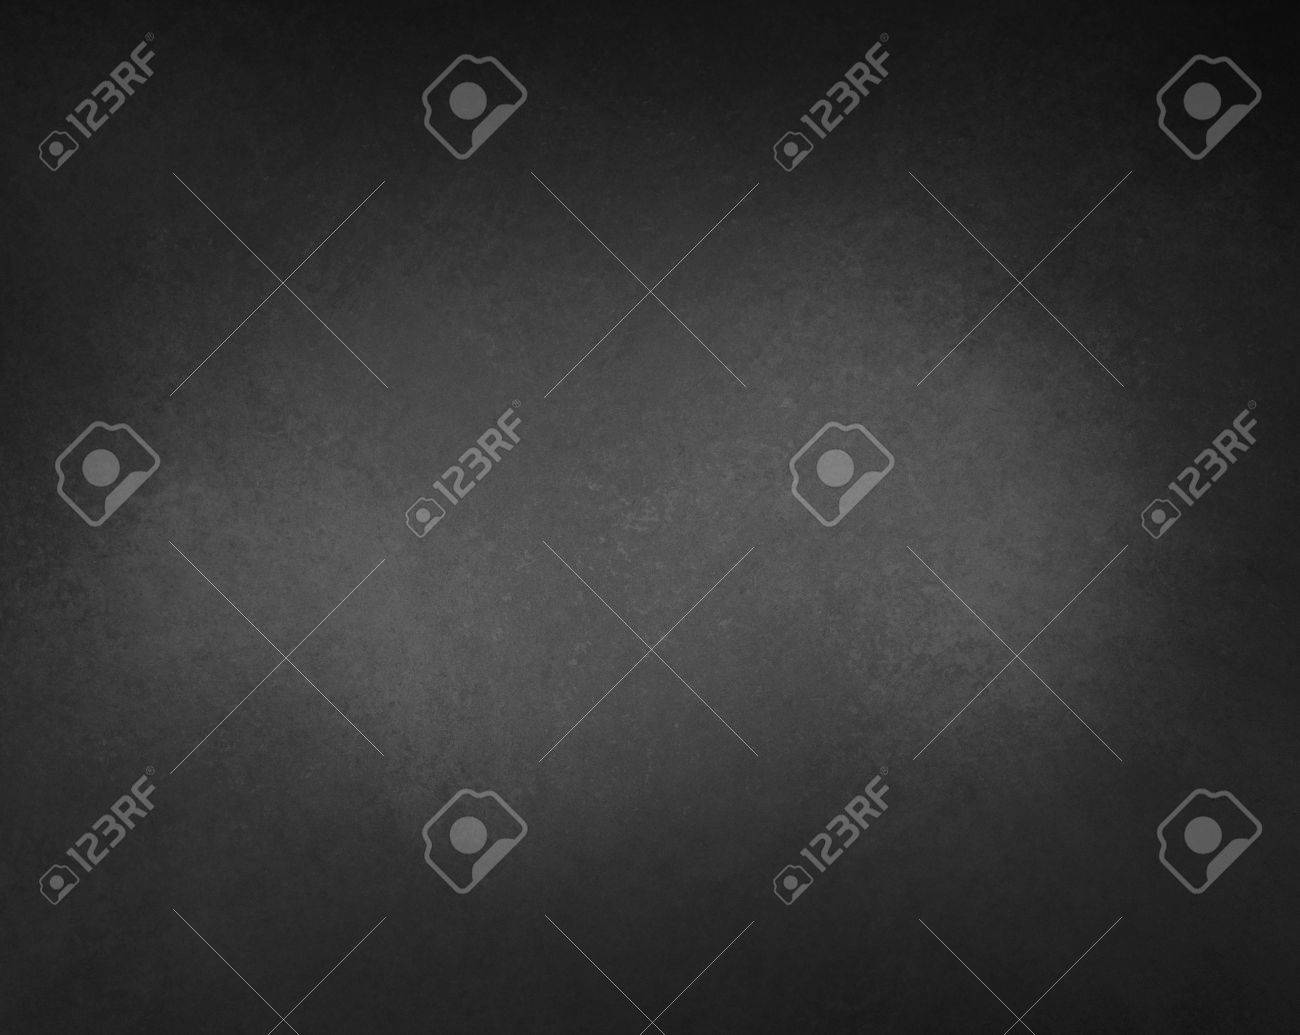 black background with gray center light spot and vignette border with texture - 70798452